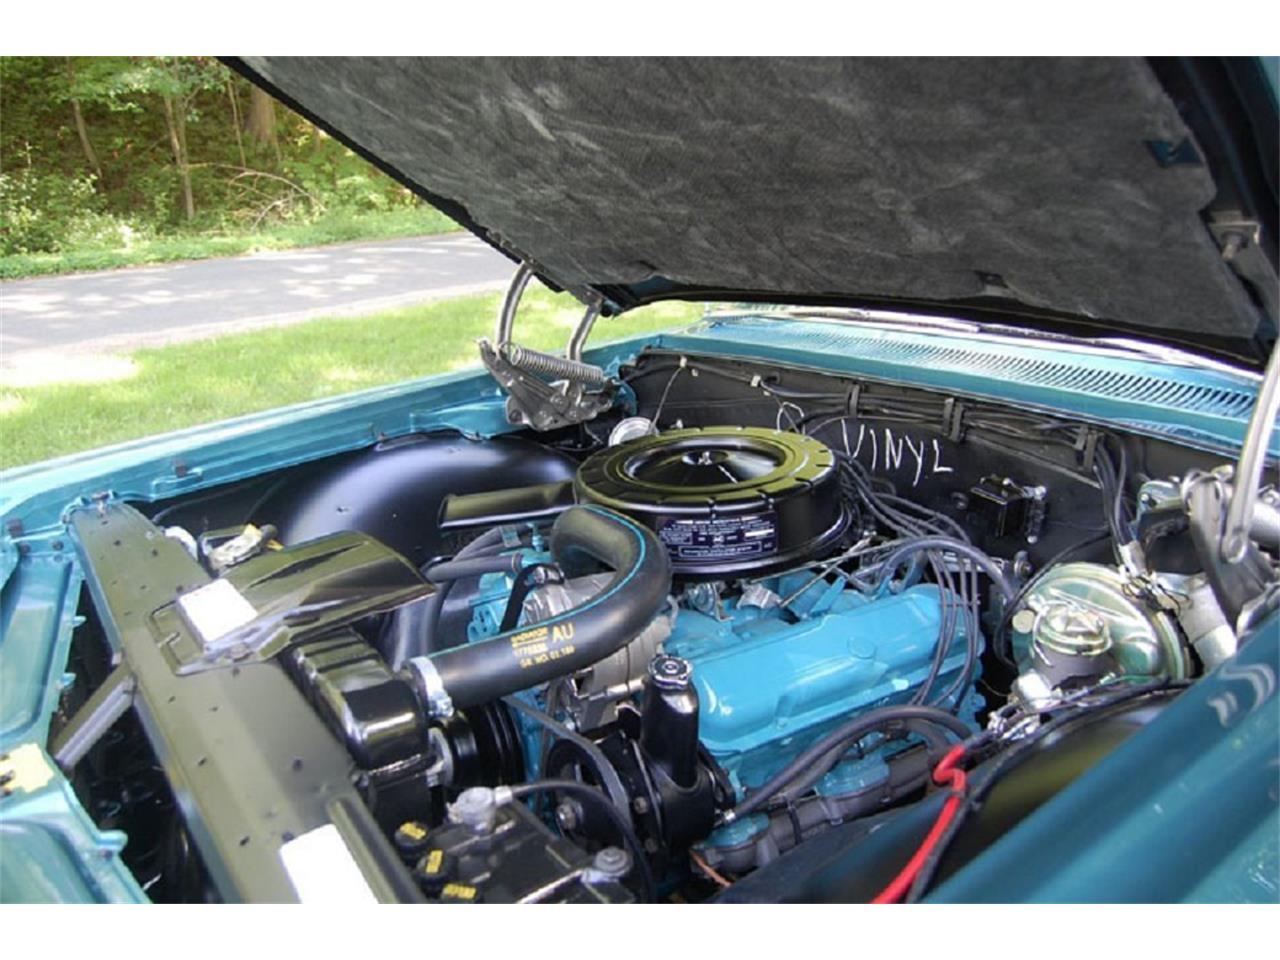 Large Picture of '64 Catalina located in MILL HALL Pennsylvania Auction Vehicle - NH87